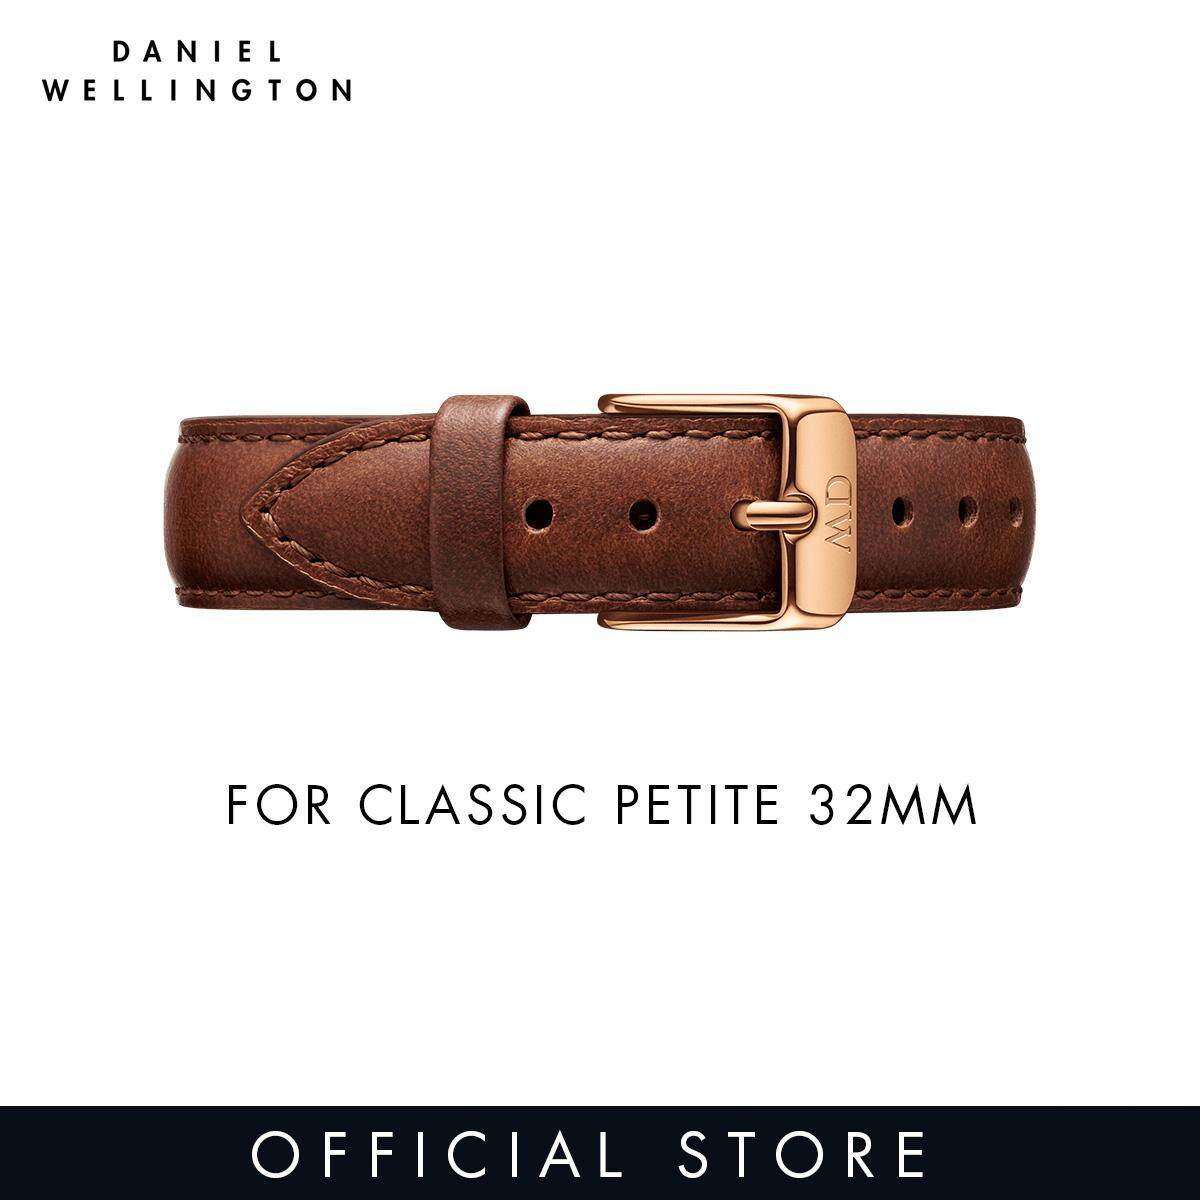 1054c0dd7310 For 32mm Classic Petite - Daniel Wellington St Mawes 14mm Watch Strap - Rose  Gold -